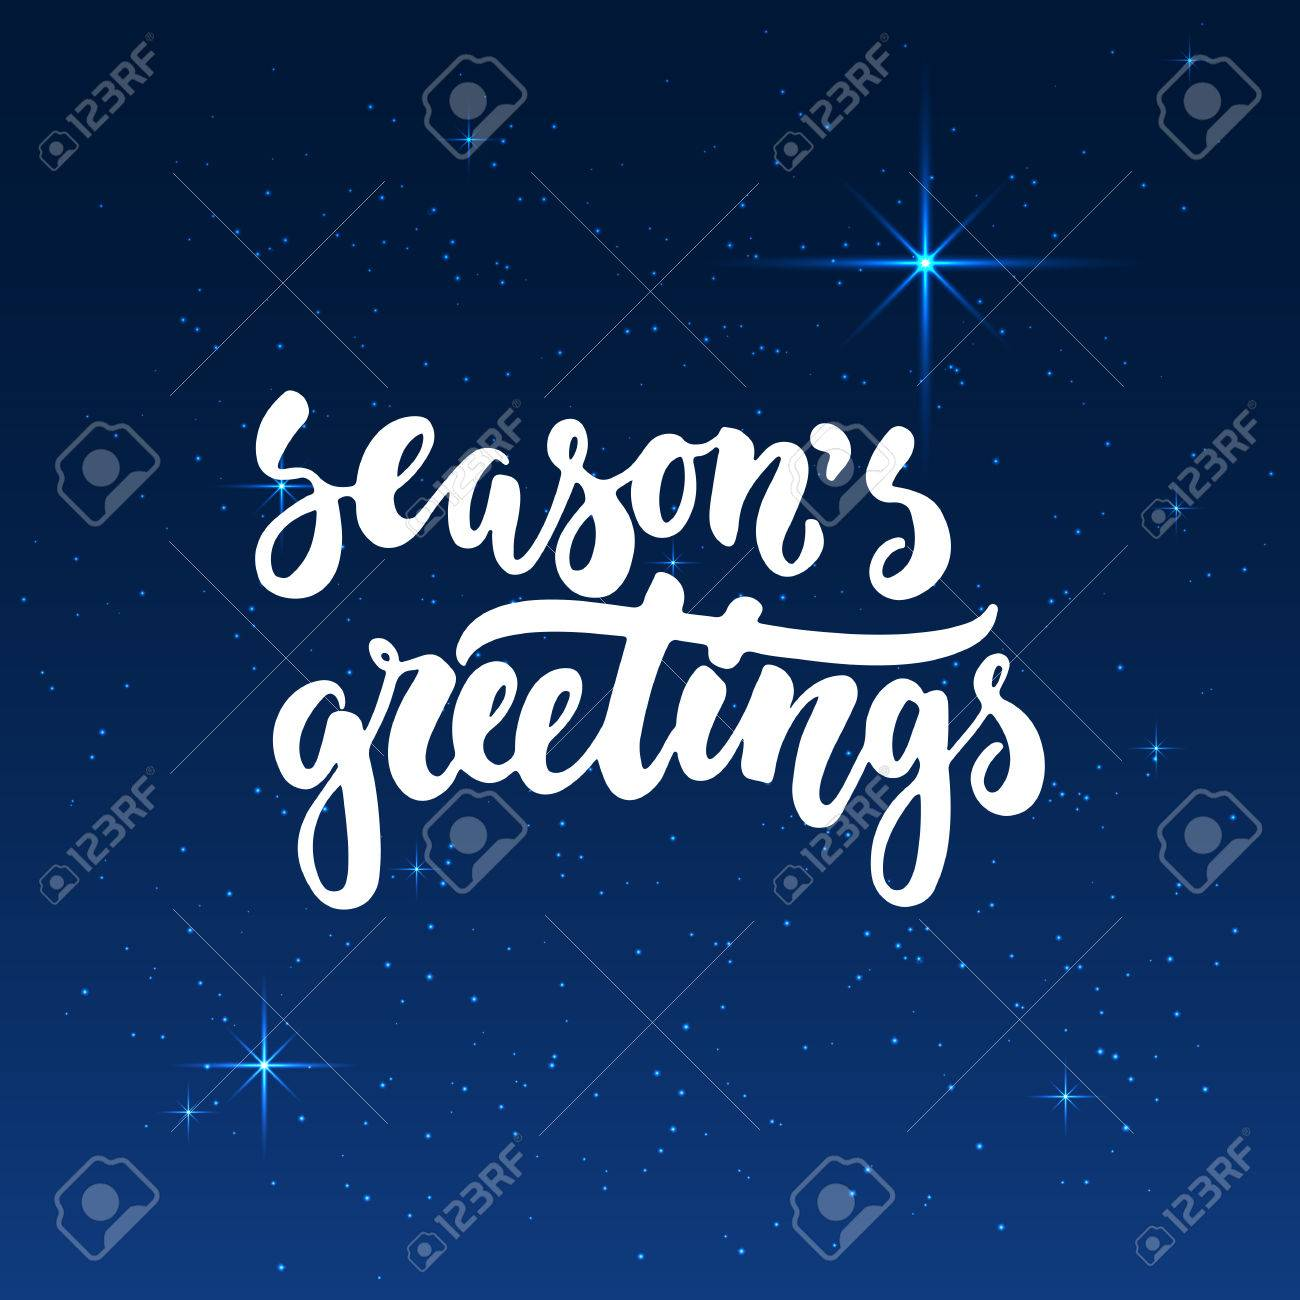 Seasons greetings lettering christmas and new year holiday seasons greetings lettering christmas and new year holiday calligraphy phrase isolated on the background m4hsunfo